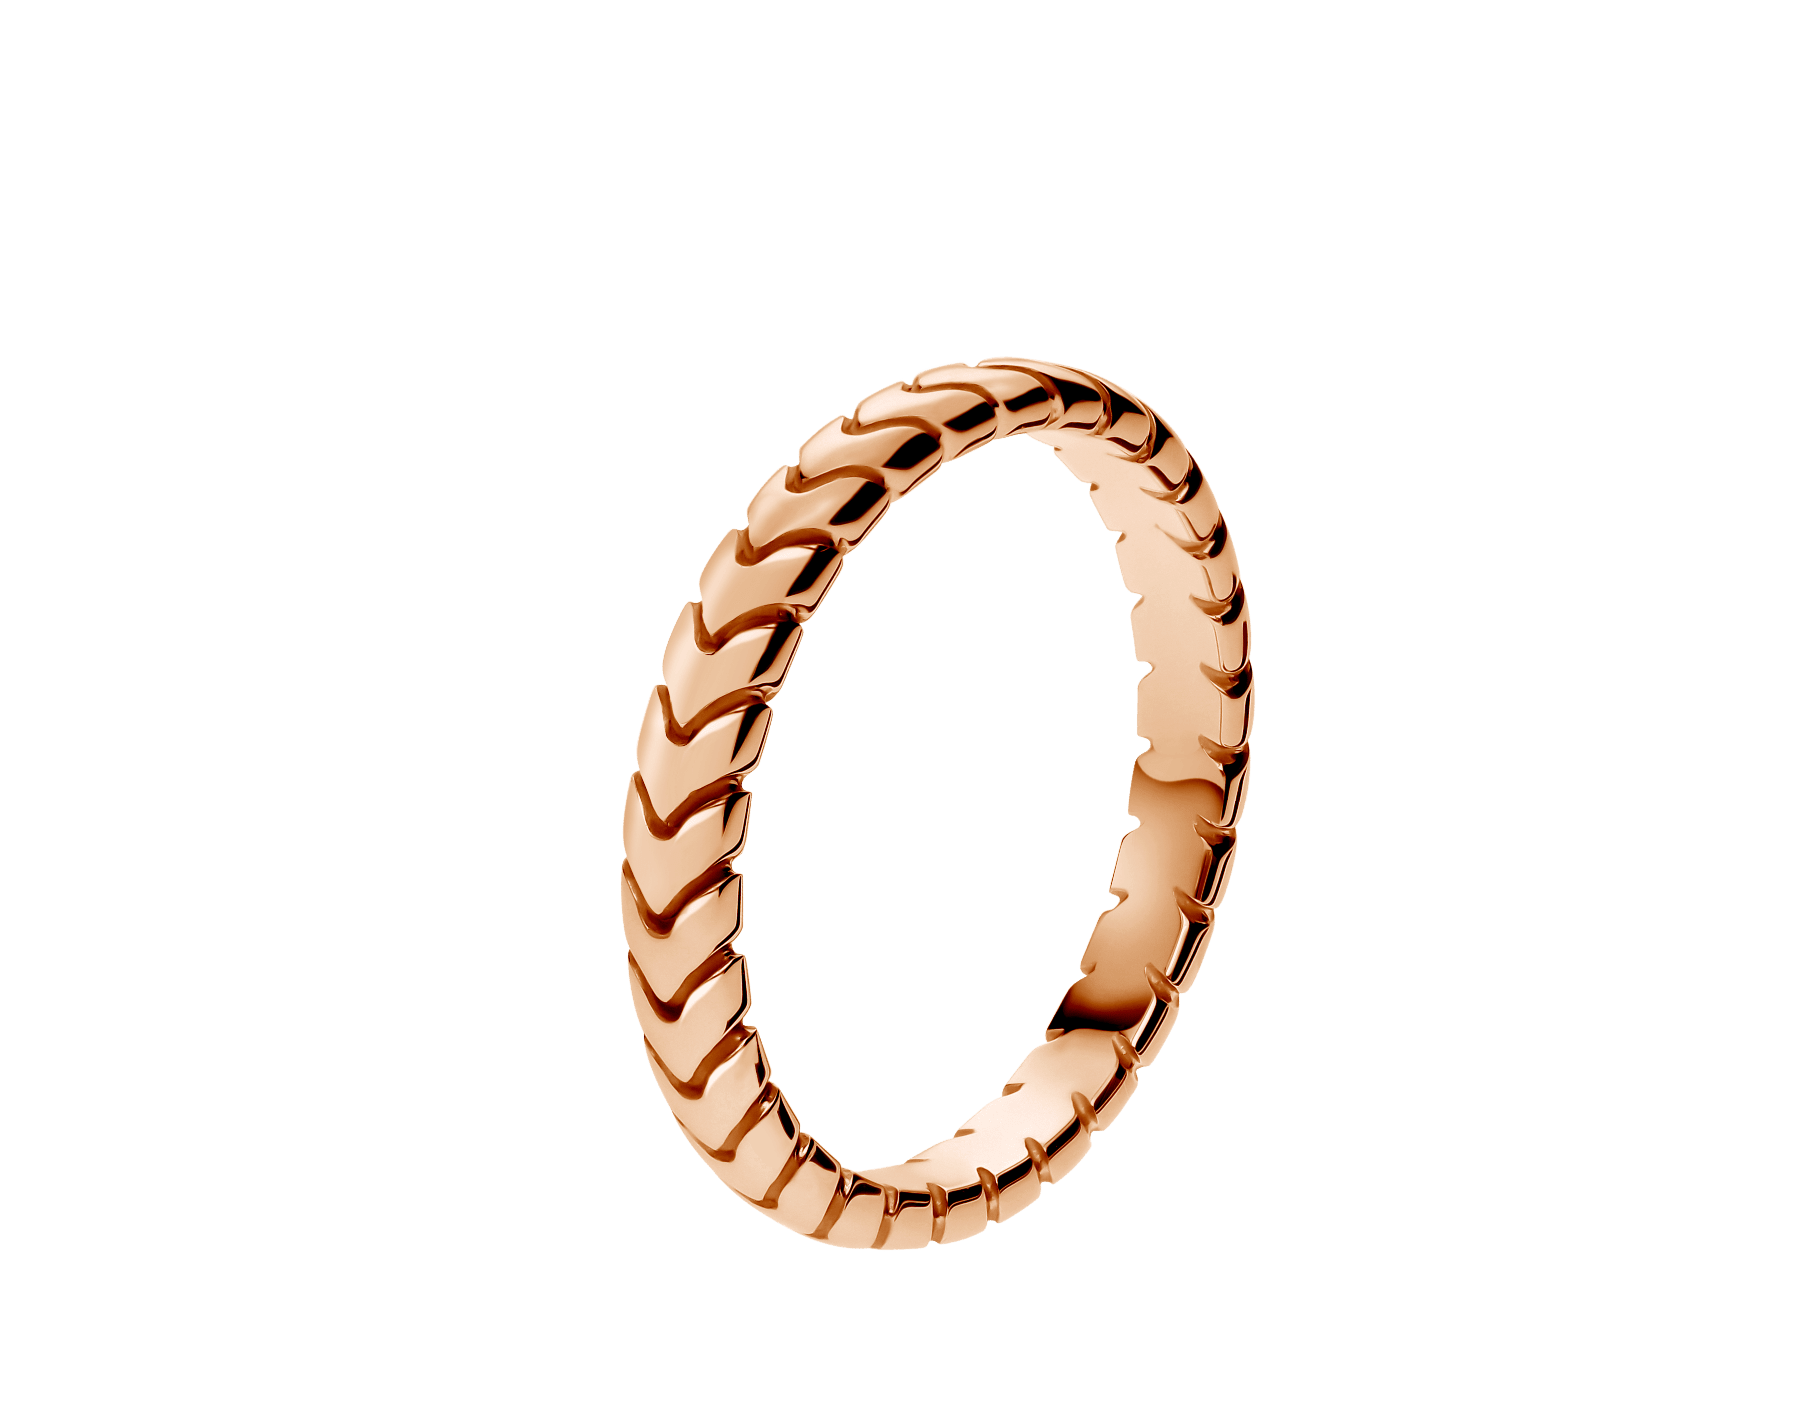 Spiga 18 kt rose gold wedding ring. (3mm wide) AN856860 image 1